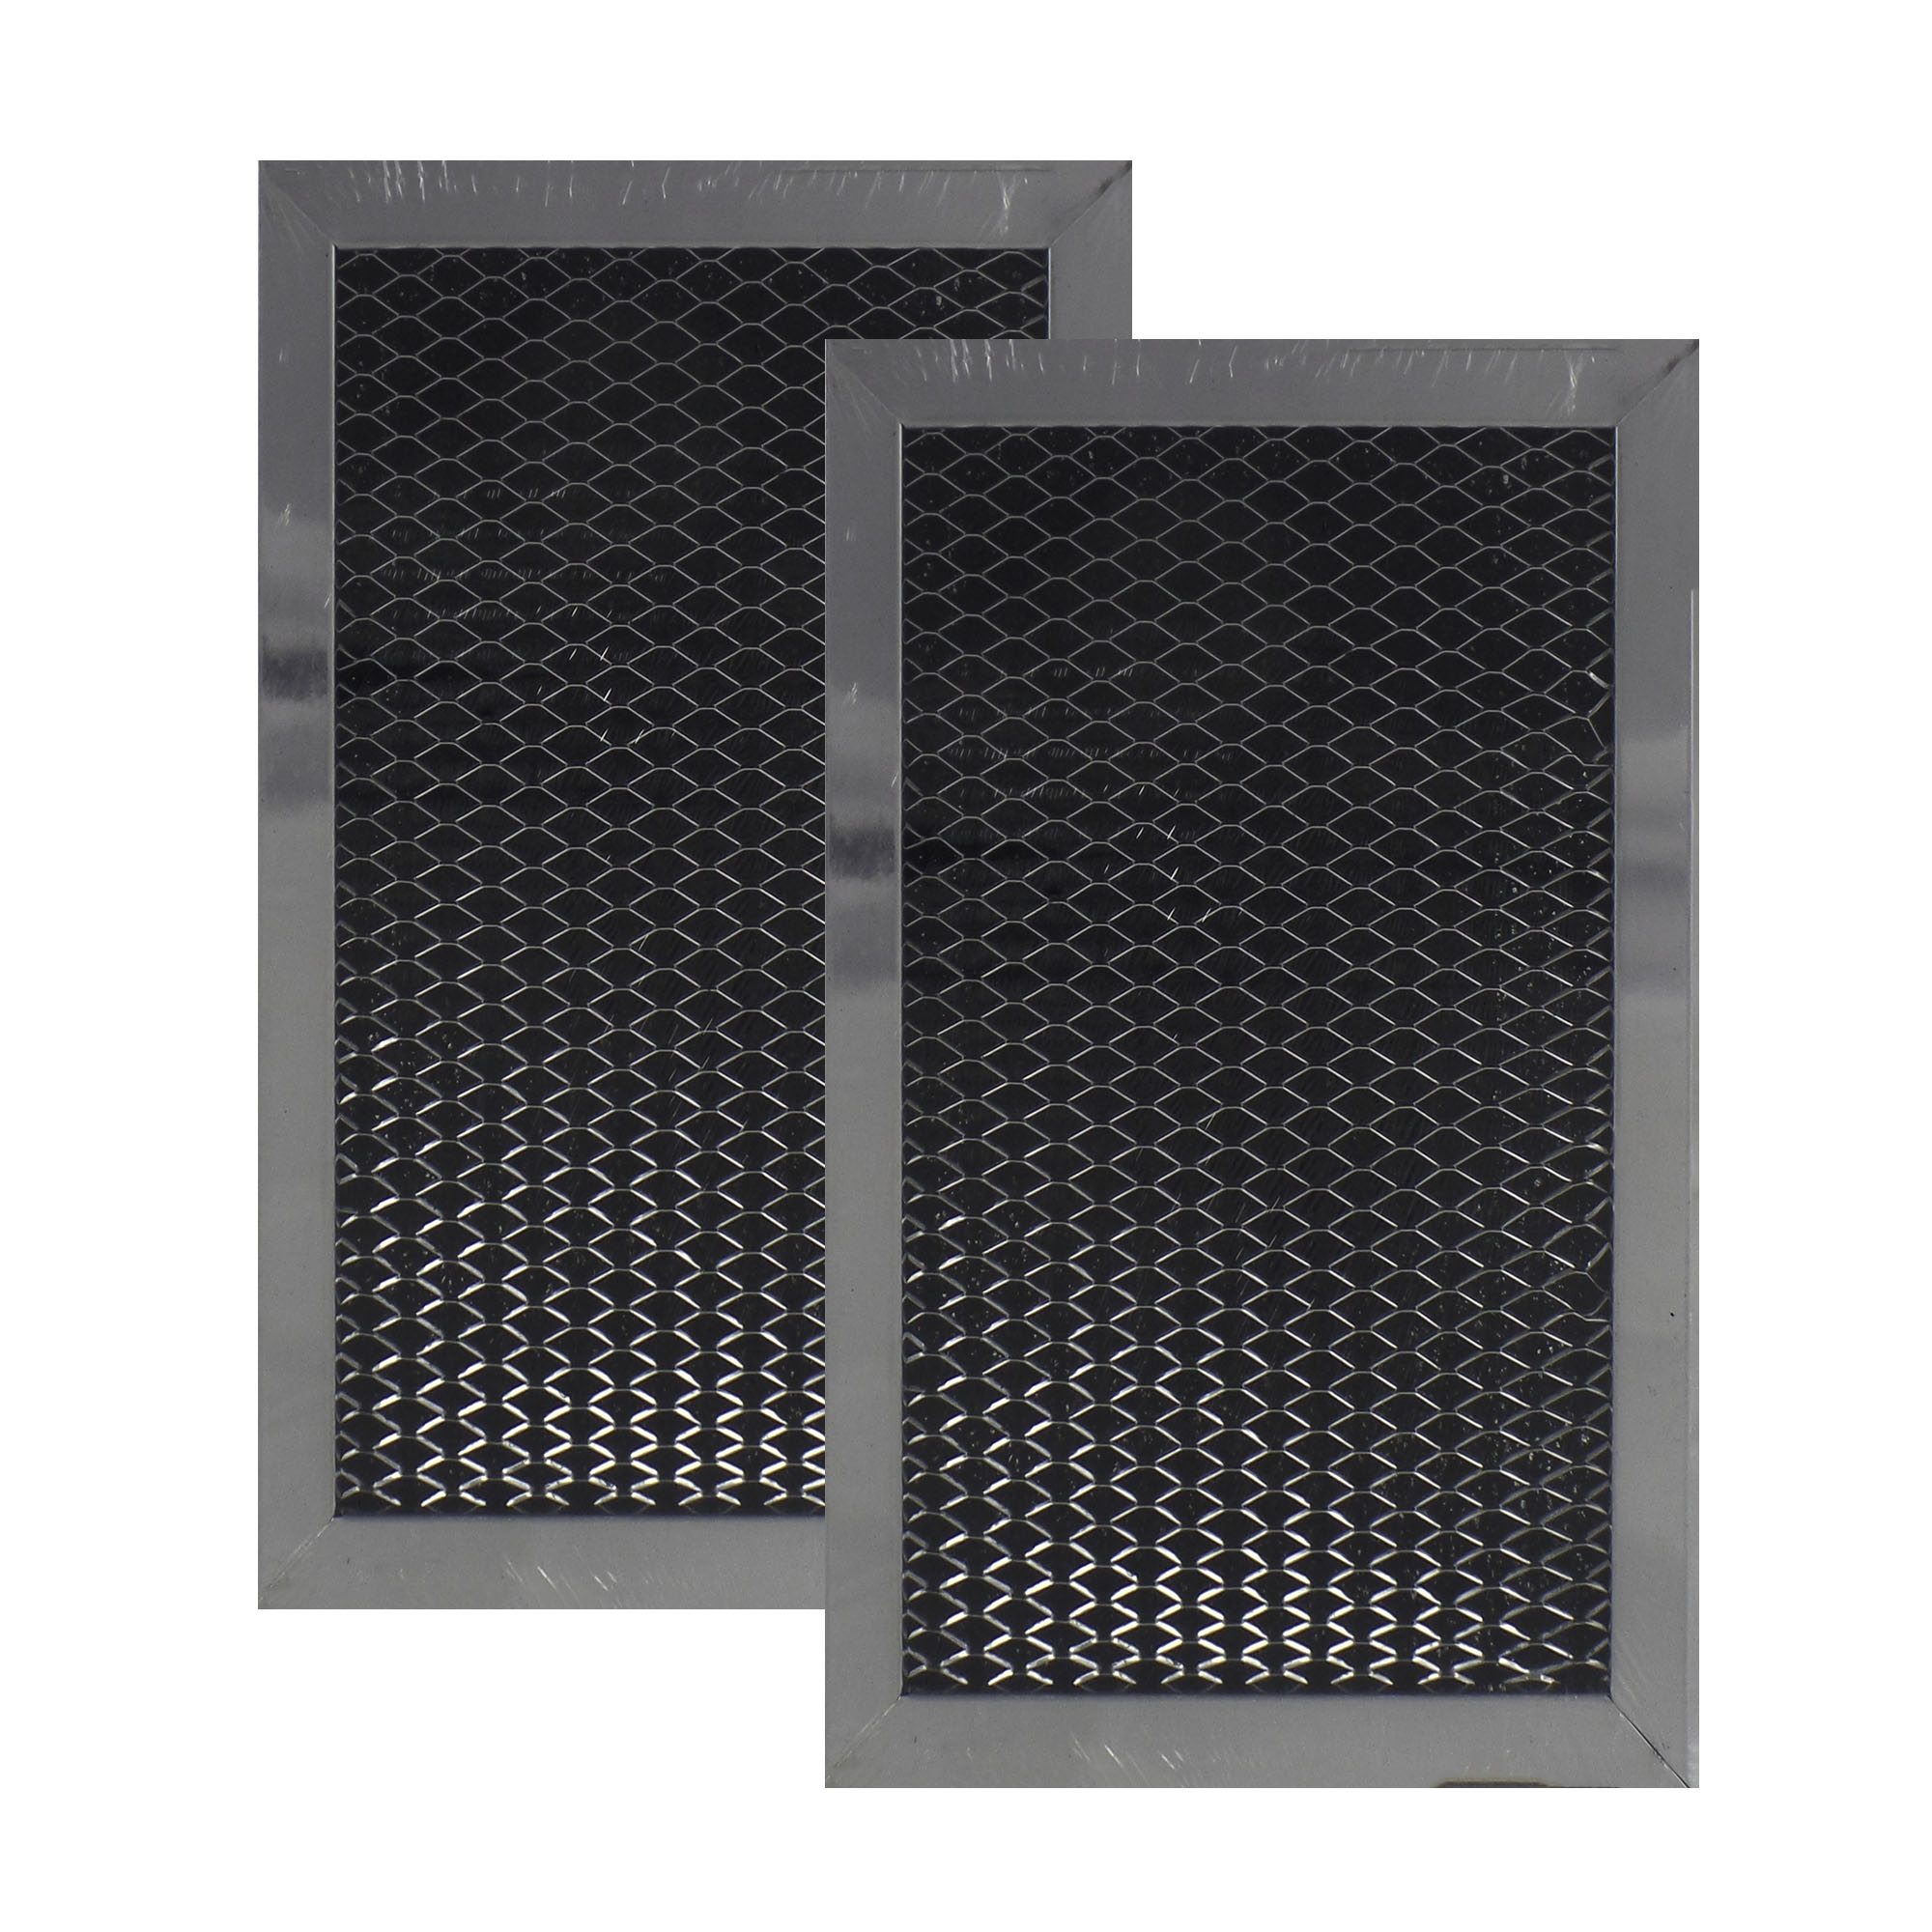 2 Magic Chief Ewave Microwave Oven Grease Filters  3511900200 2 pack